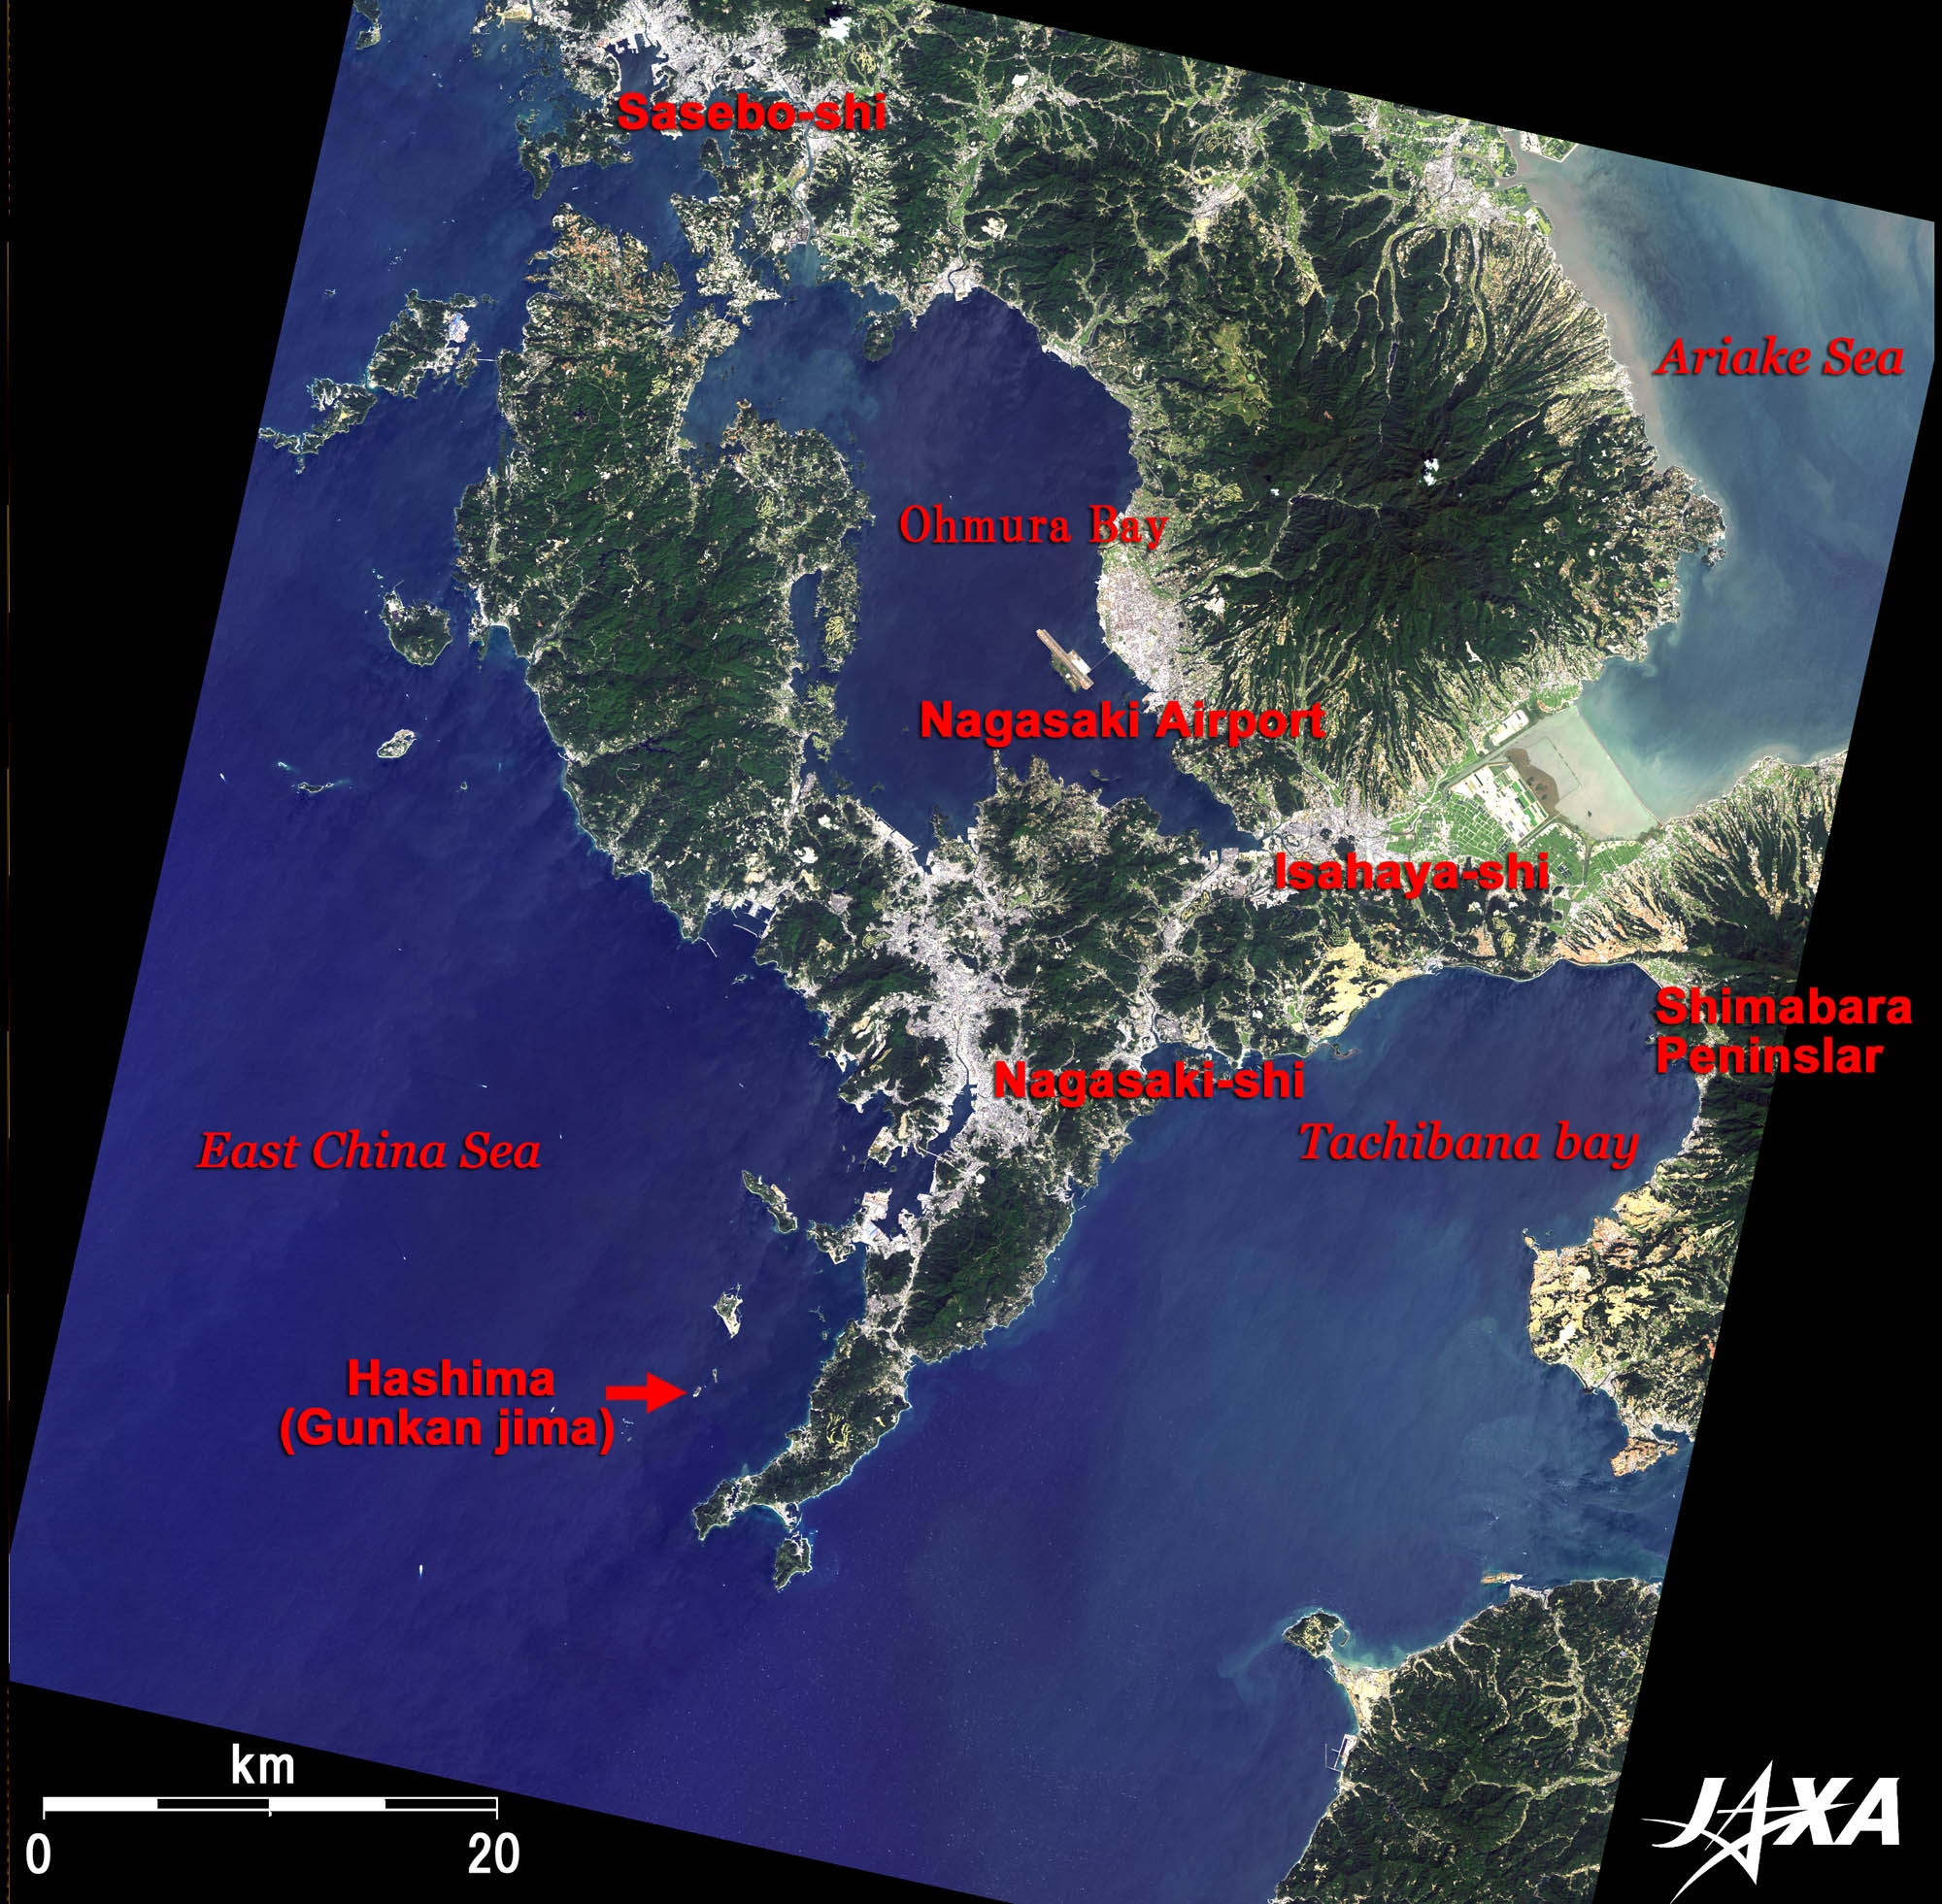 Nagasaki On World Map.Nagasaki And Warship Island 2009 Jaxa Earth Observation Research